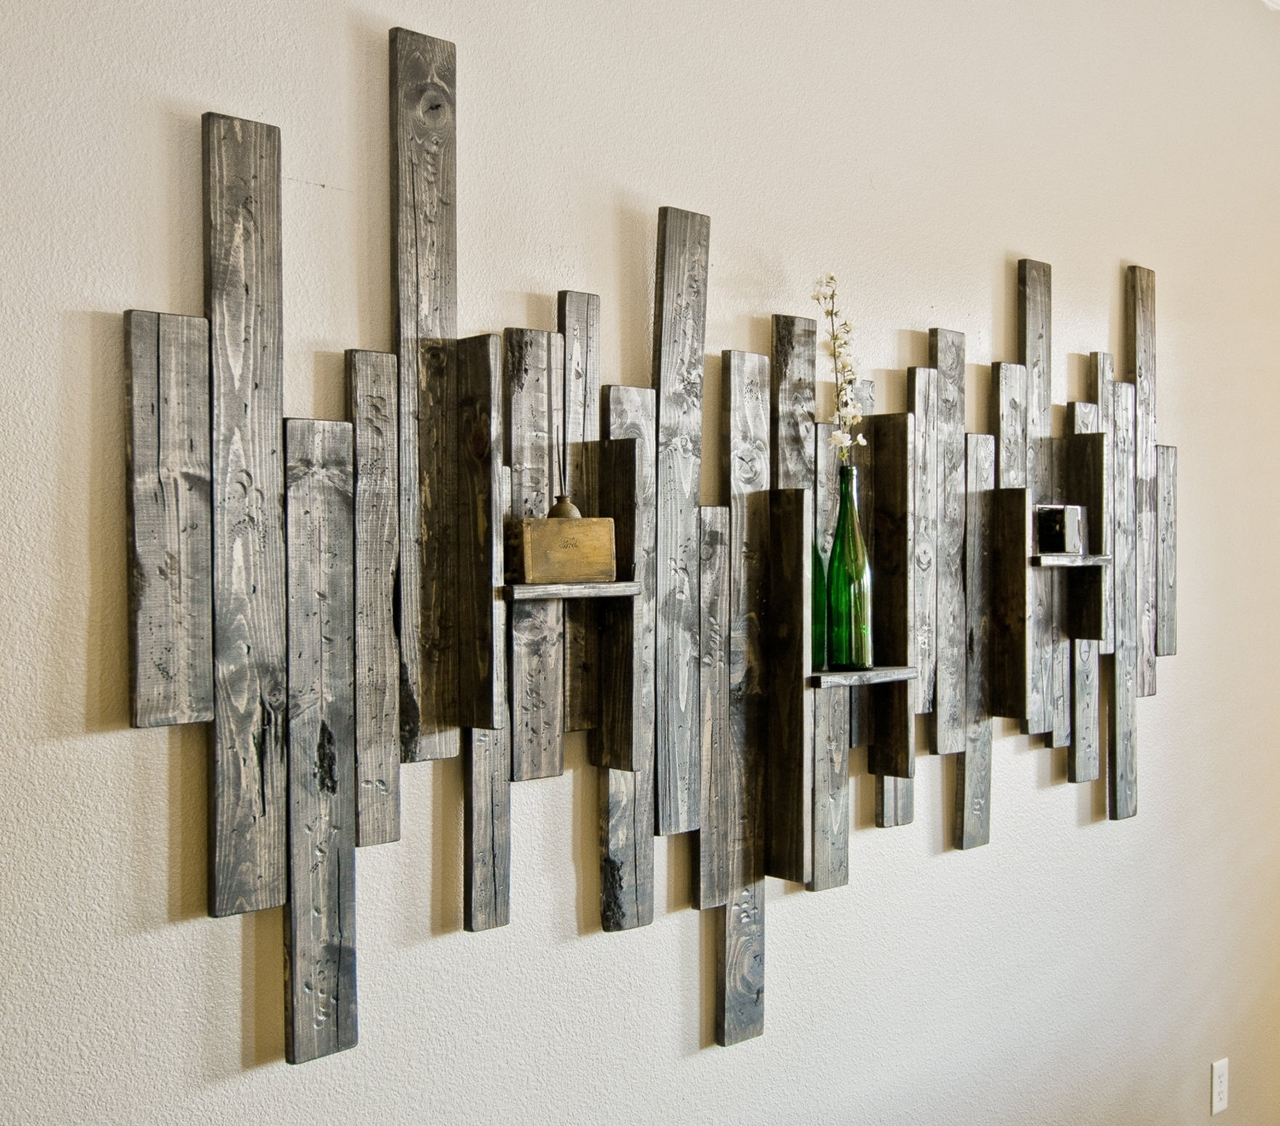 27 Best Rustic Wall Decor Ideas And Designs For 2018 Intended For Most Current Rustic Wall Accents (View 1 of 15)